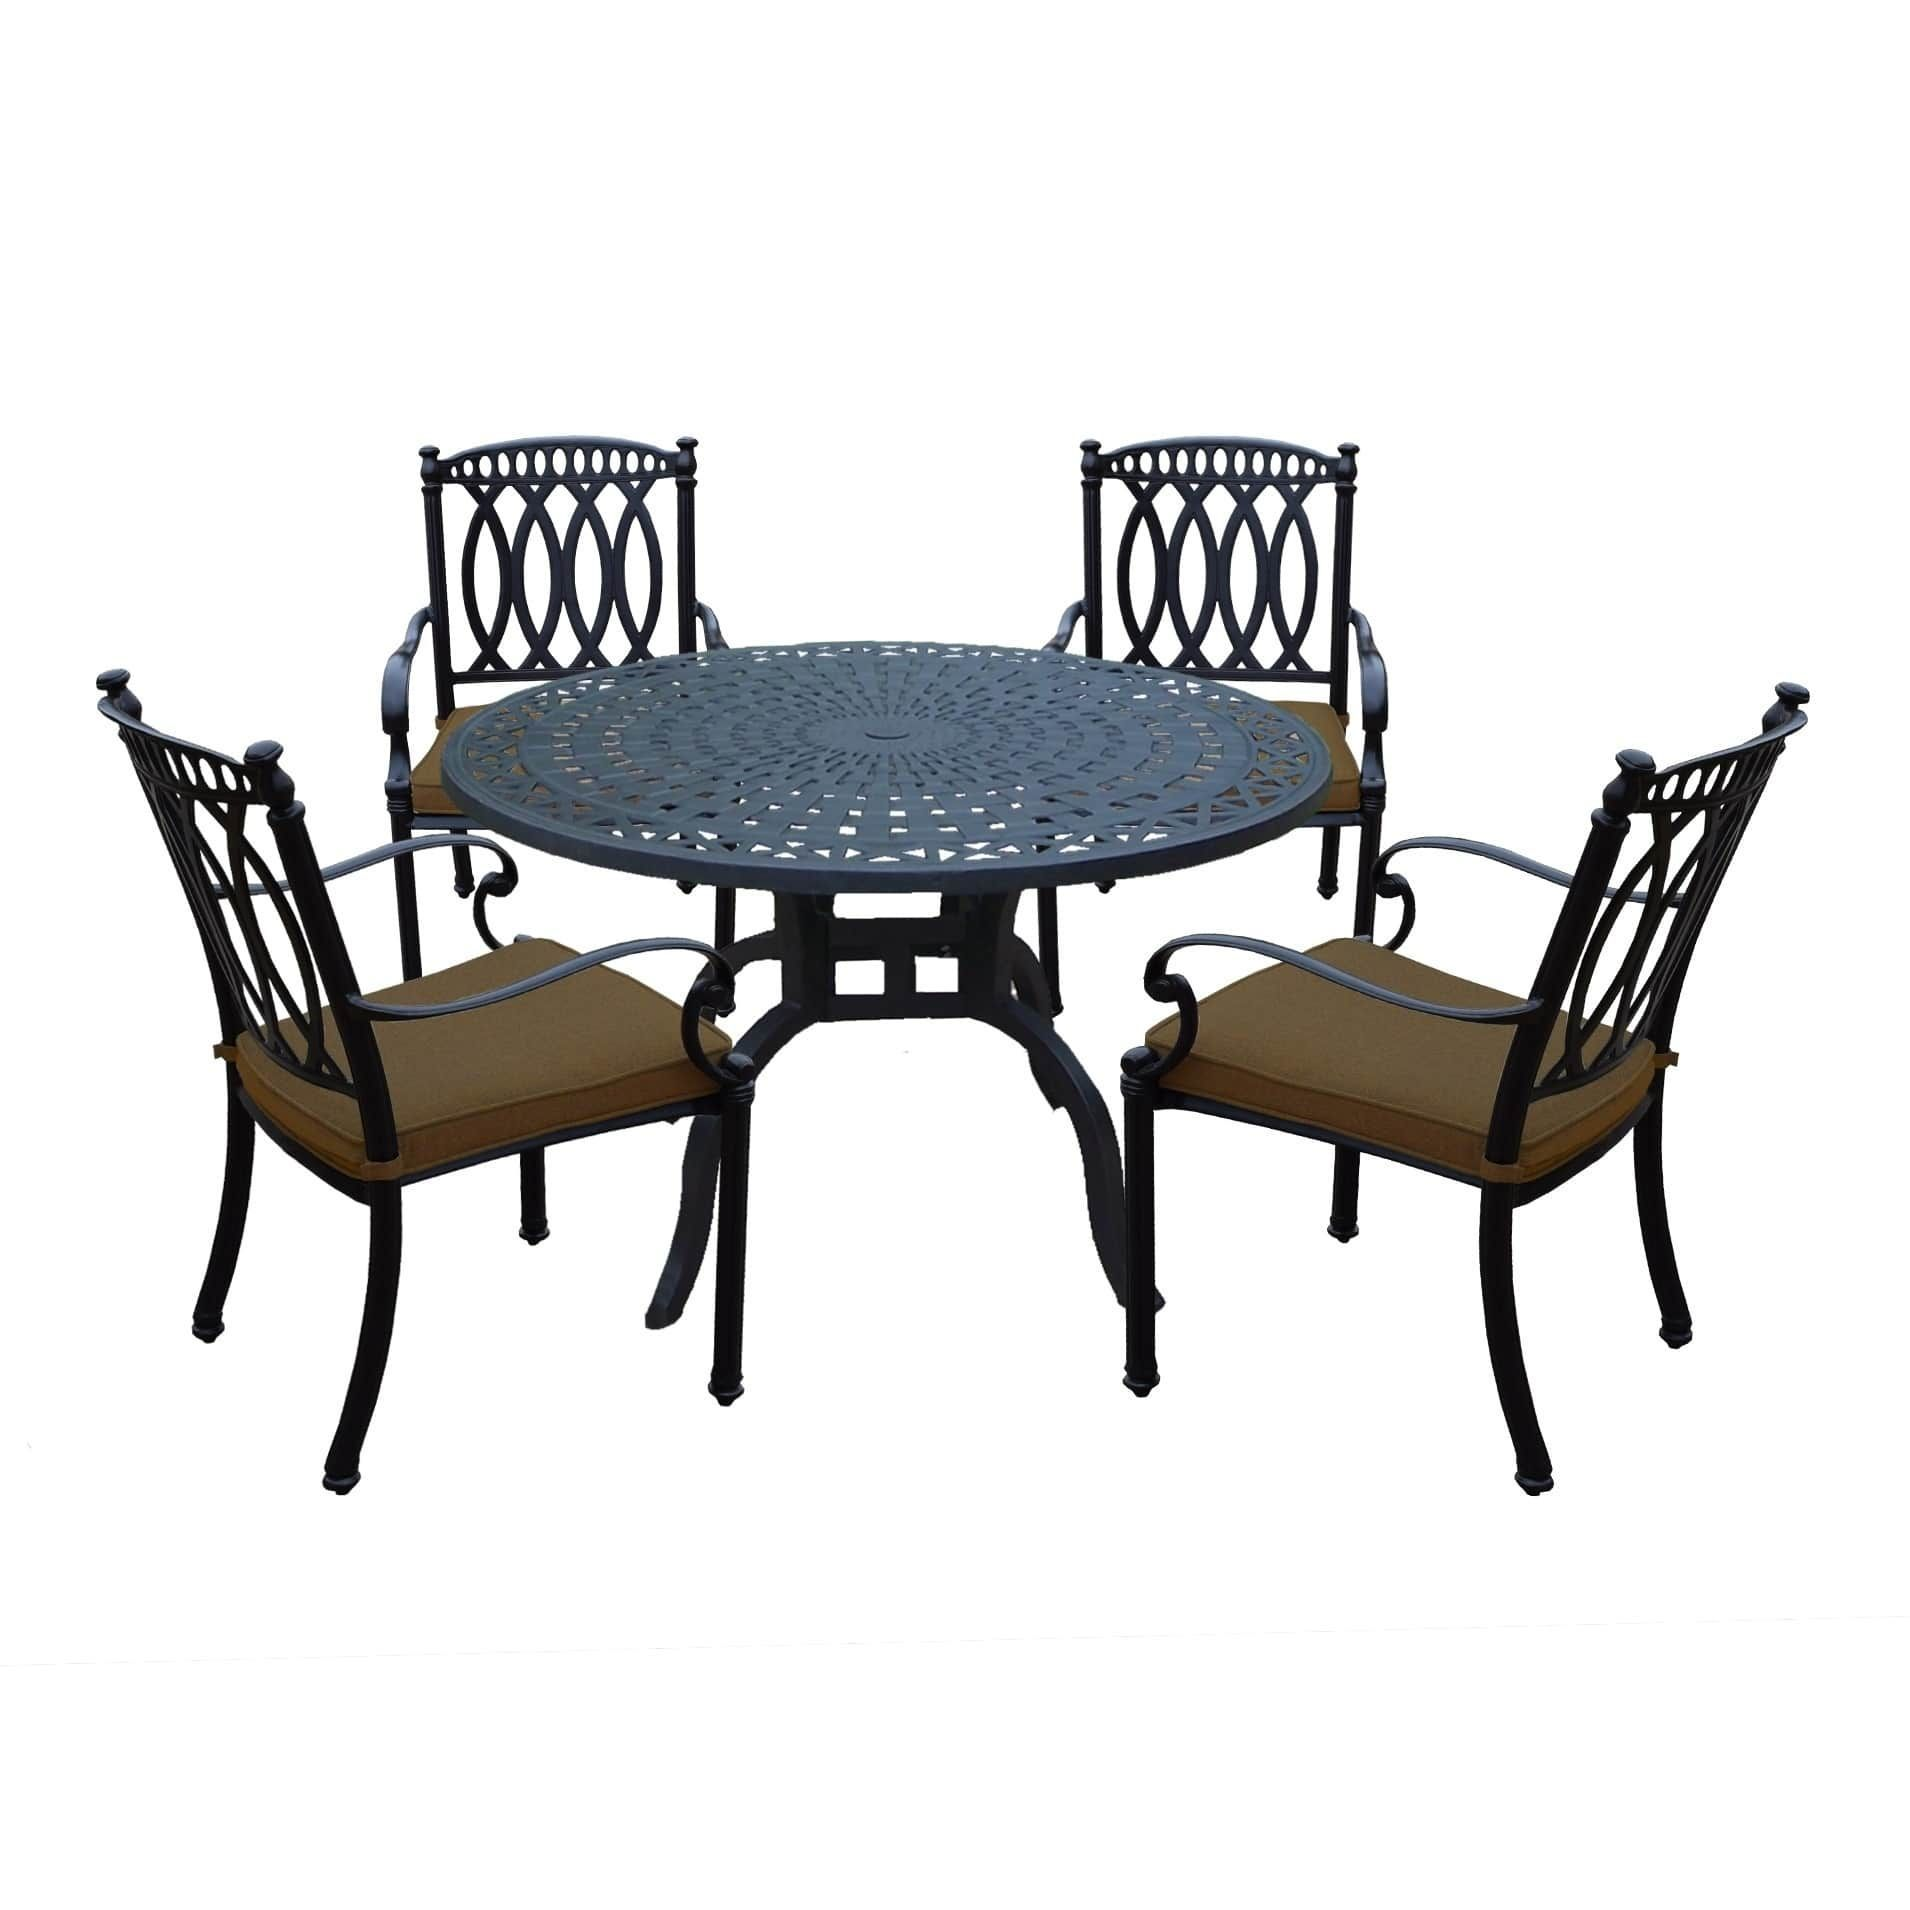 Round dining table and chairs for 4  Aluminum  Piece Dining Set with in Round Dining Table and